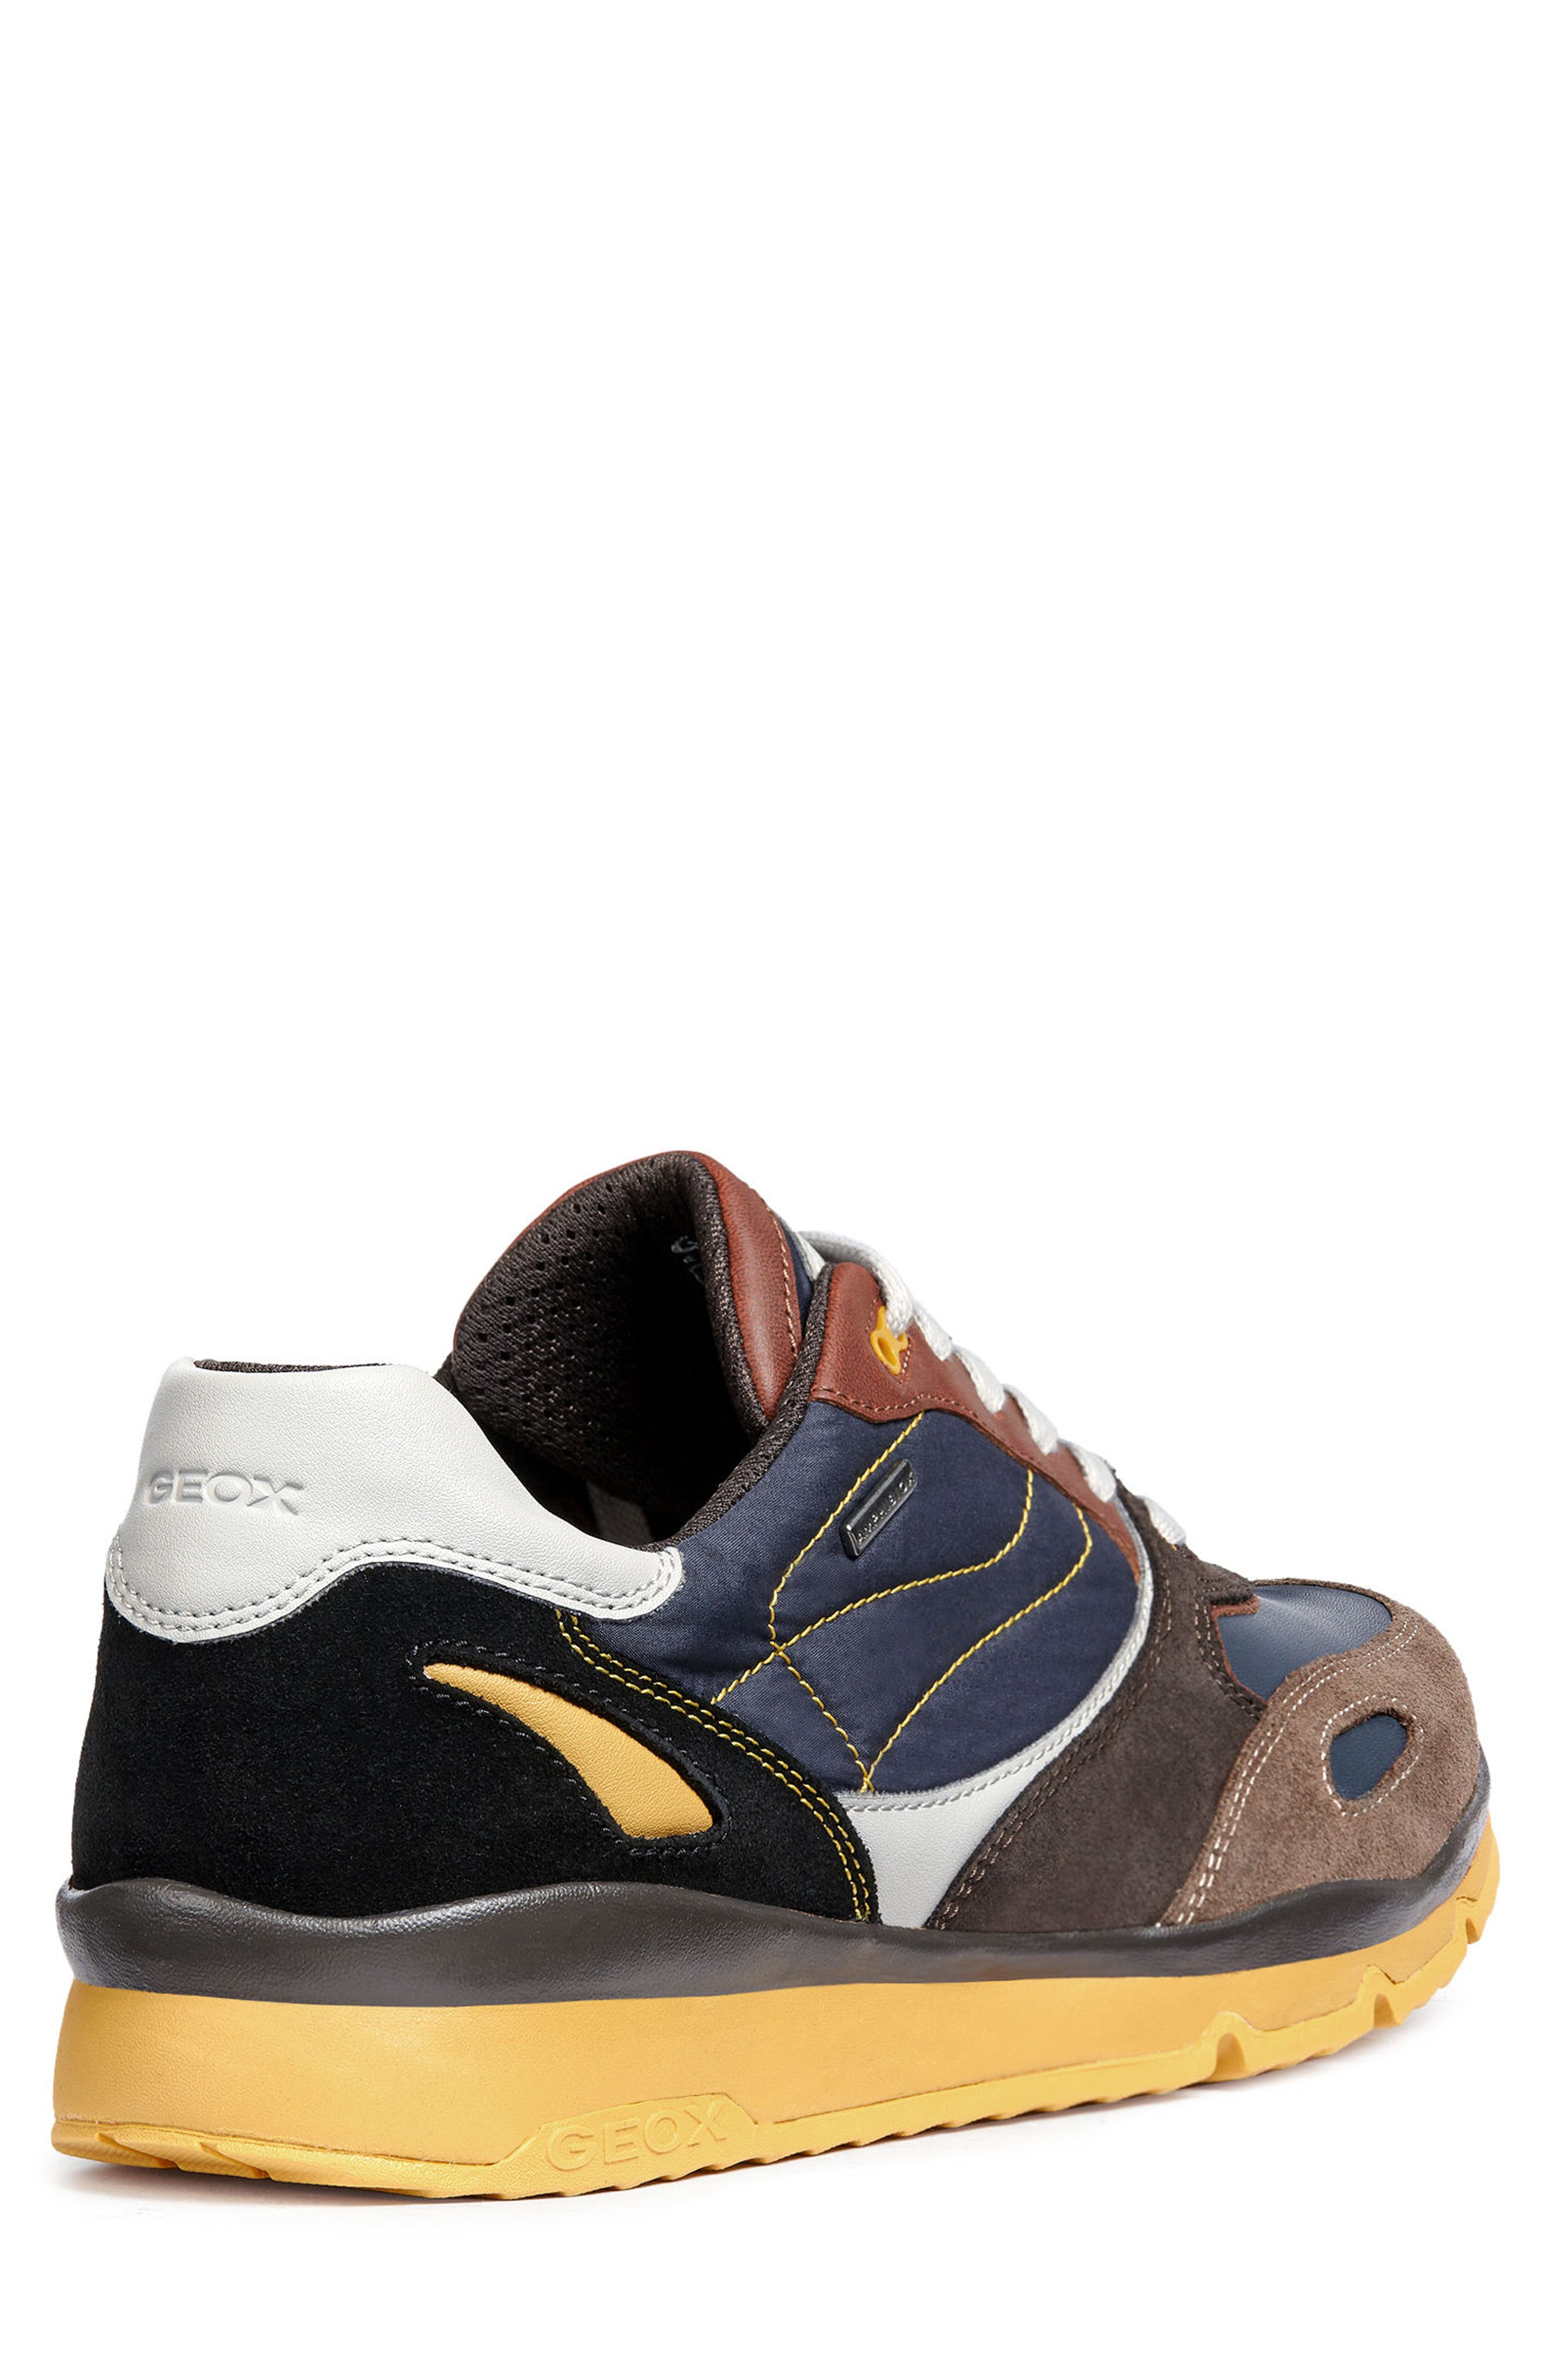 Sandford ABX 1 Waterproof Low Top Sneaker,                             Alternate thumbnail 2, color,                             CHOCOLATE/ NAVY LEATHER